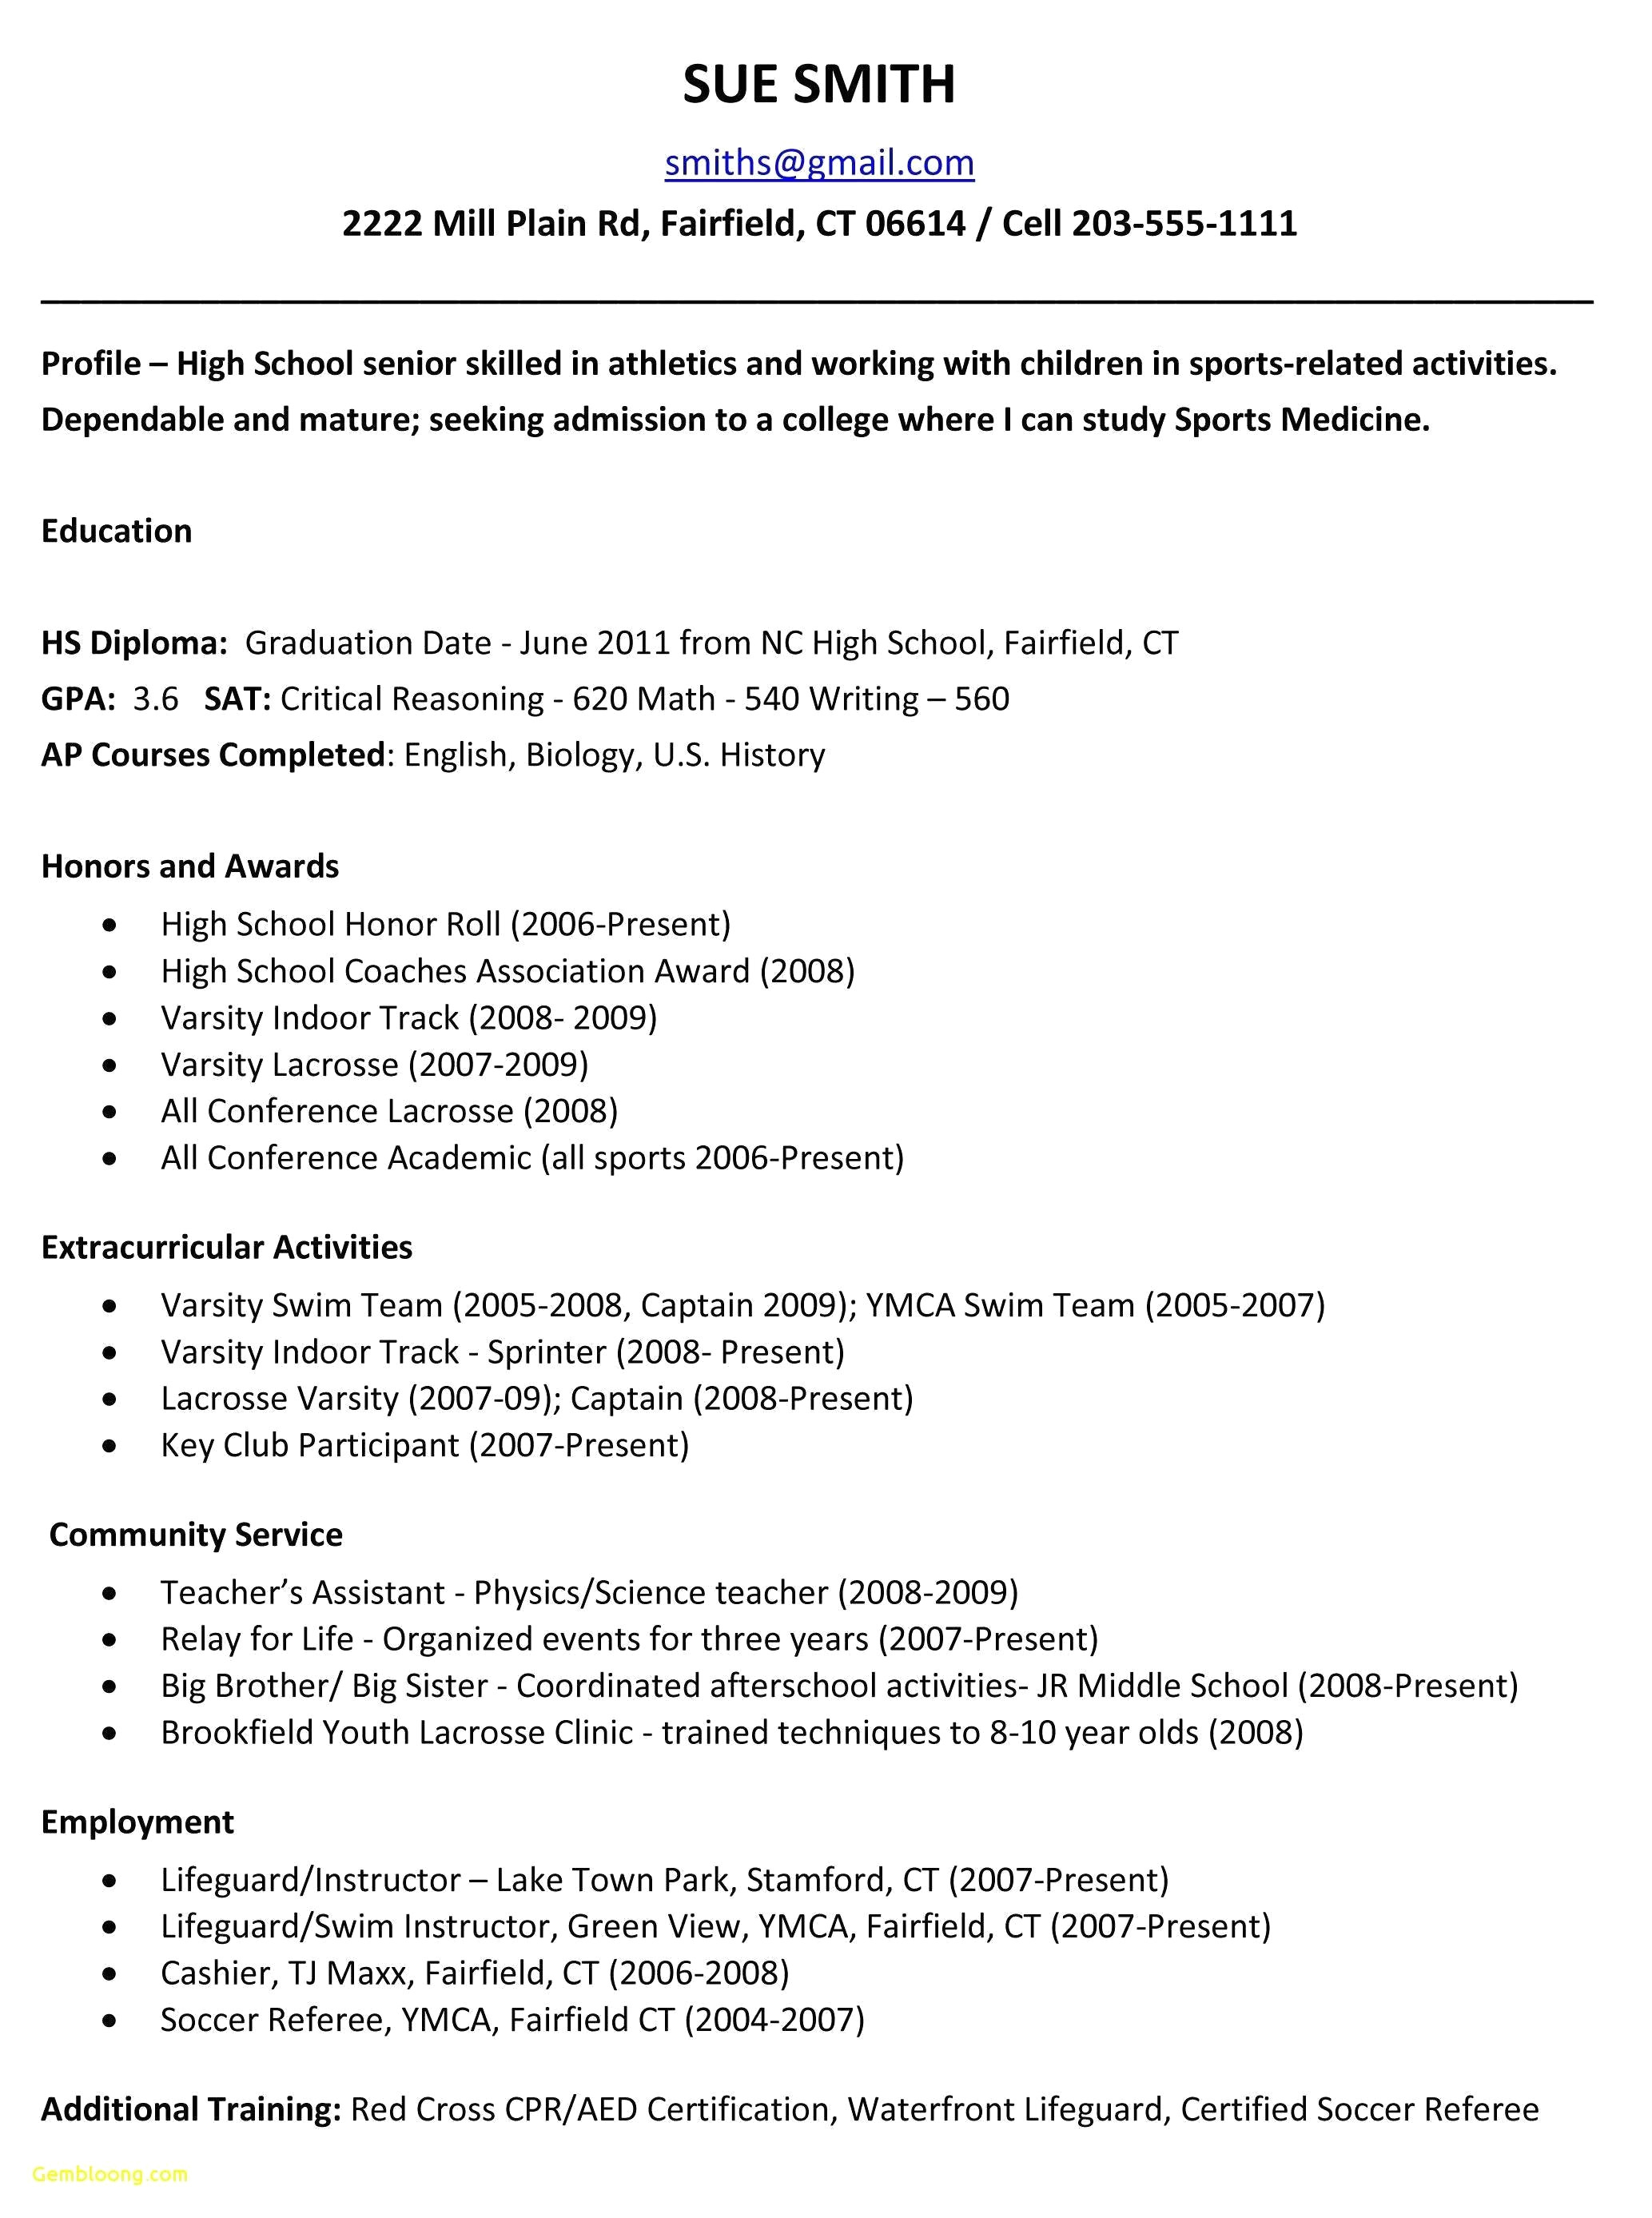 Lifeguard Responsibilities Resume - 44 Design Sample social Work Resume